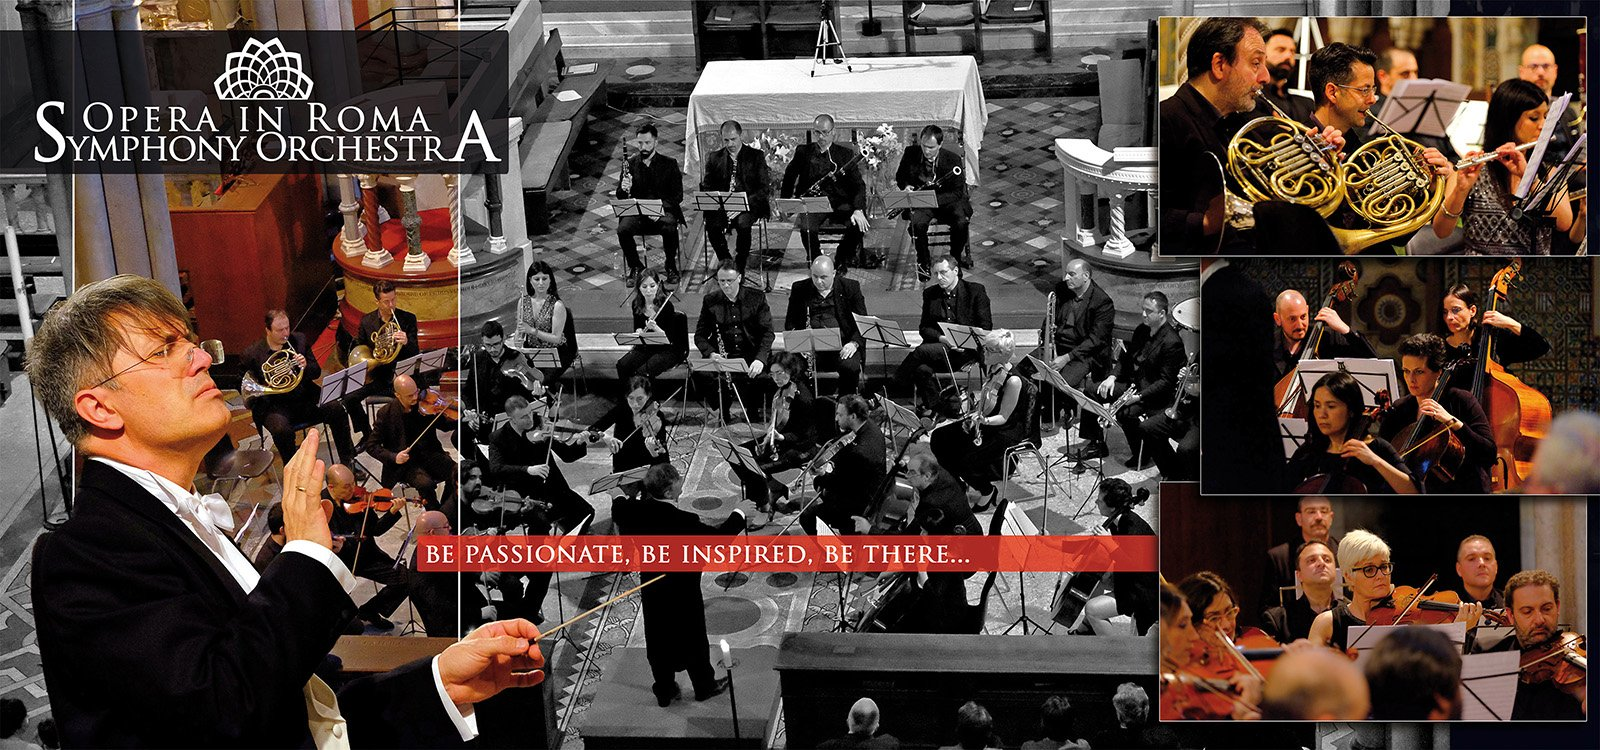 Opera in Roma Symphony Orchestra